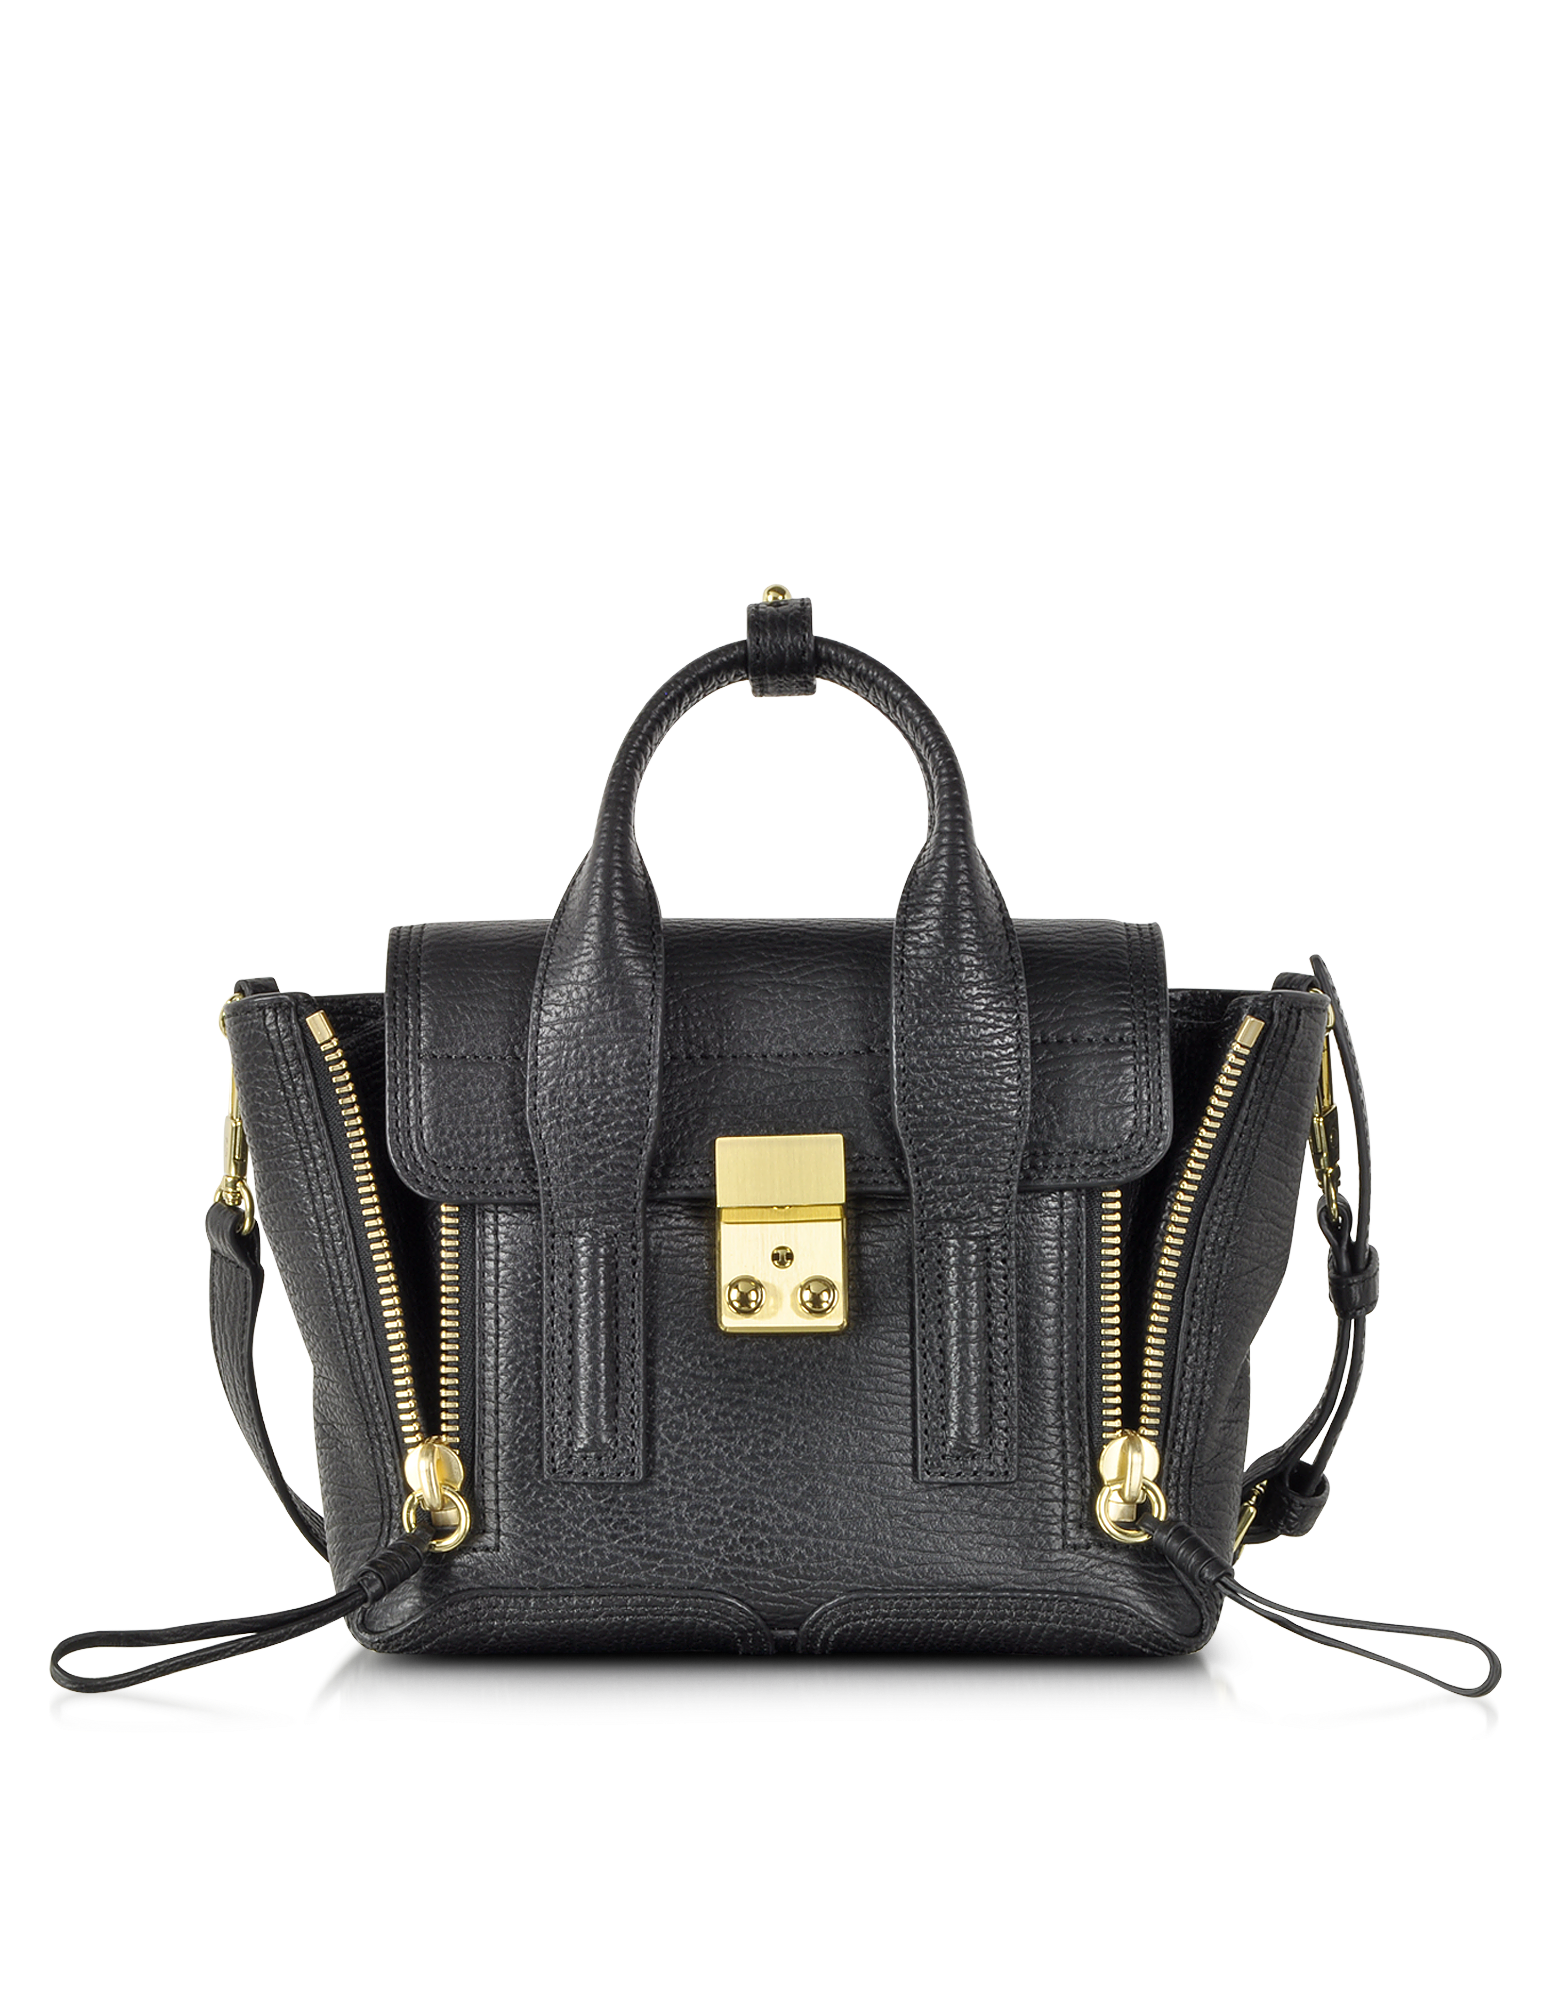 Image of Black Pashli Mini Satchel